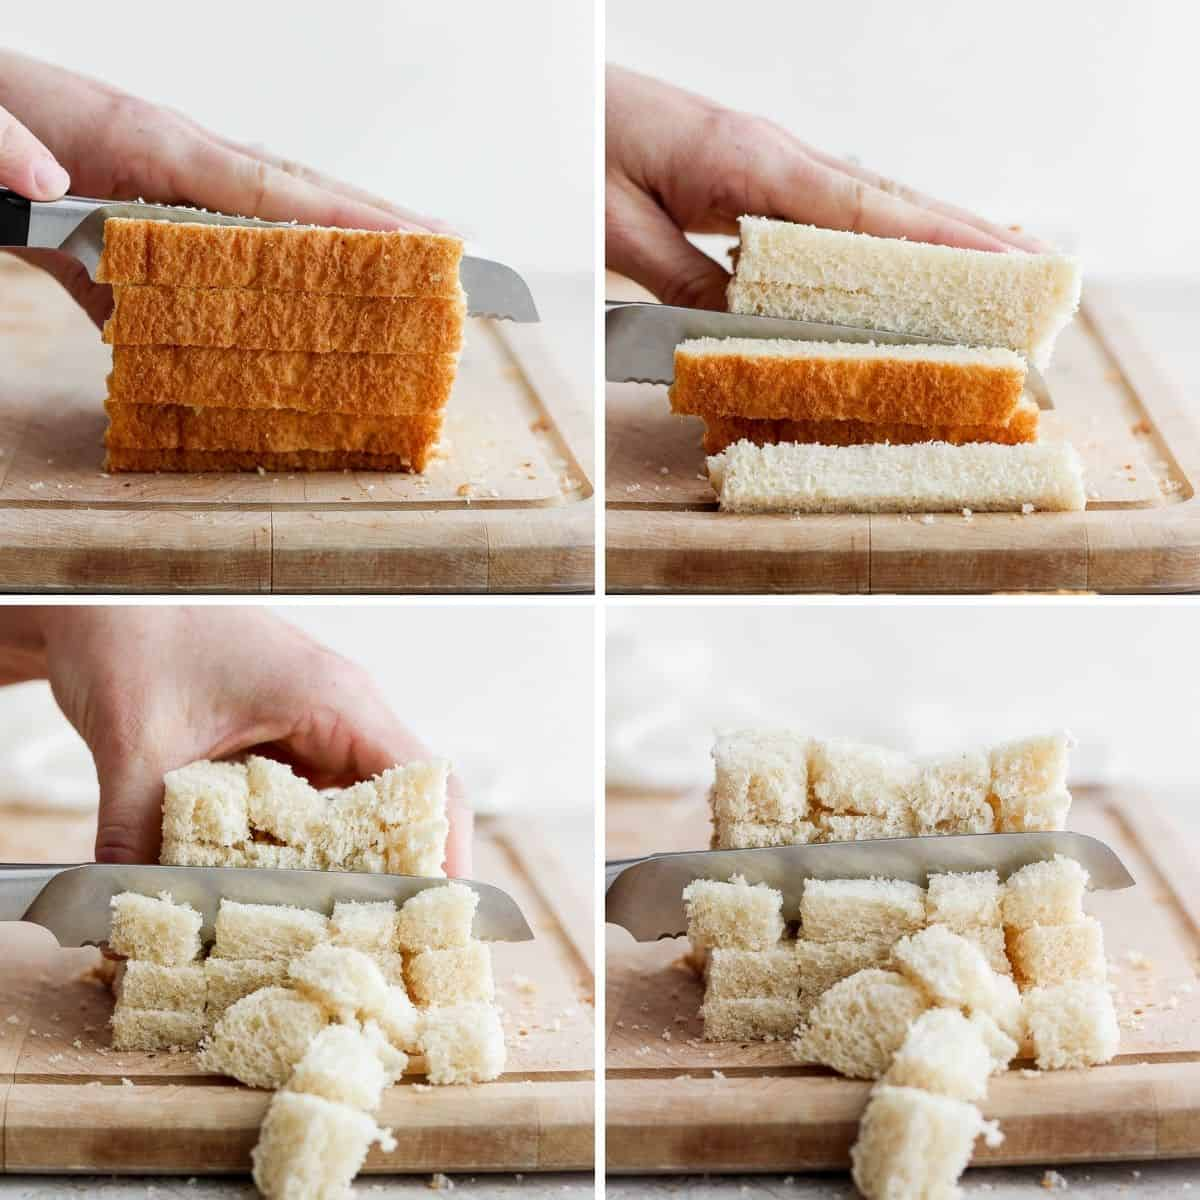 4 image collage to show cutting the sliced bread into cubes